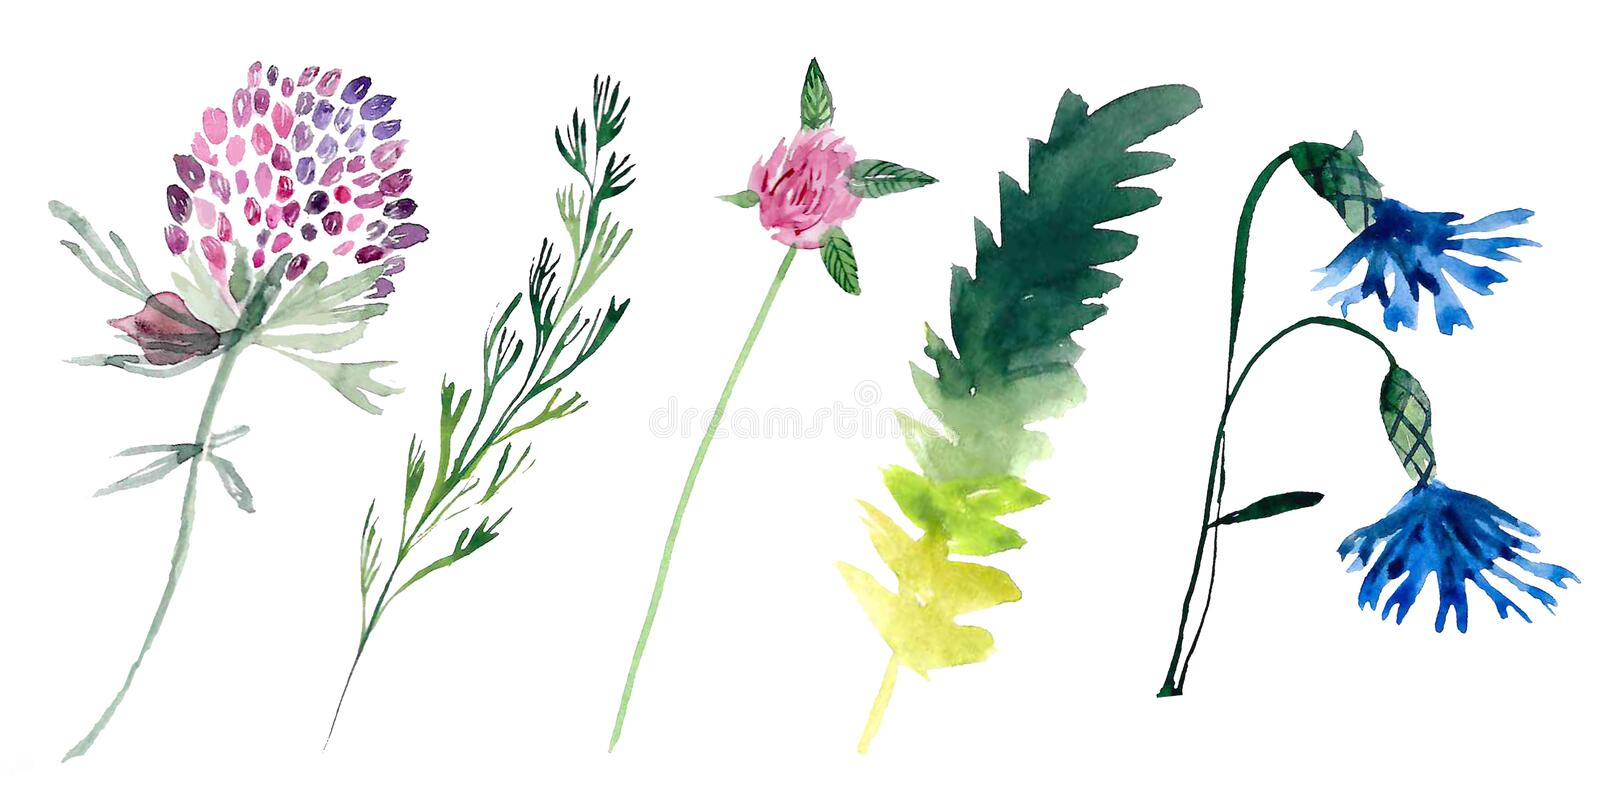 Hand drawn watercolor illustrations isolated on white background. royalty free stock photography